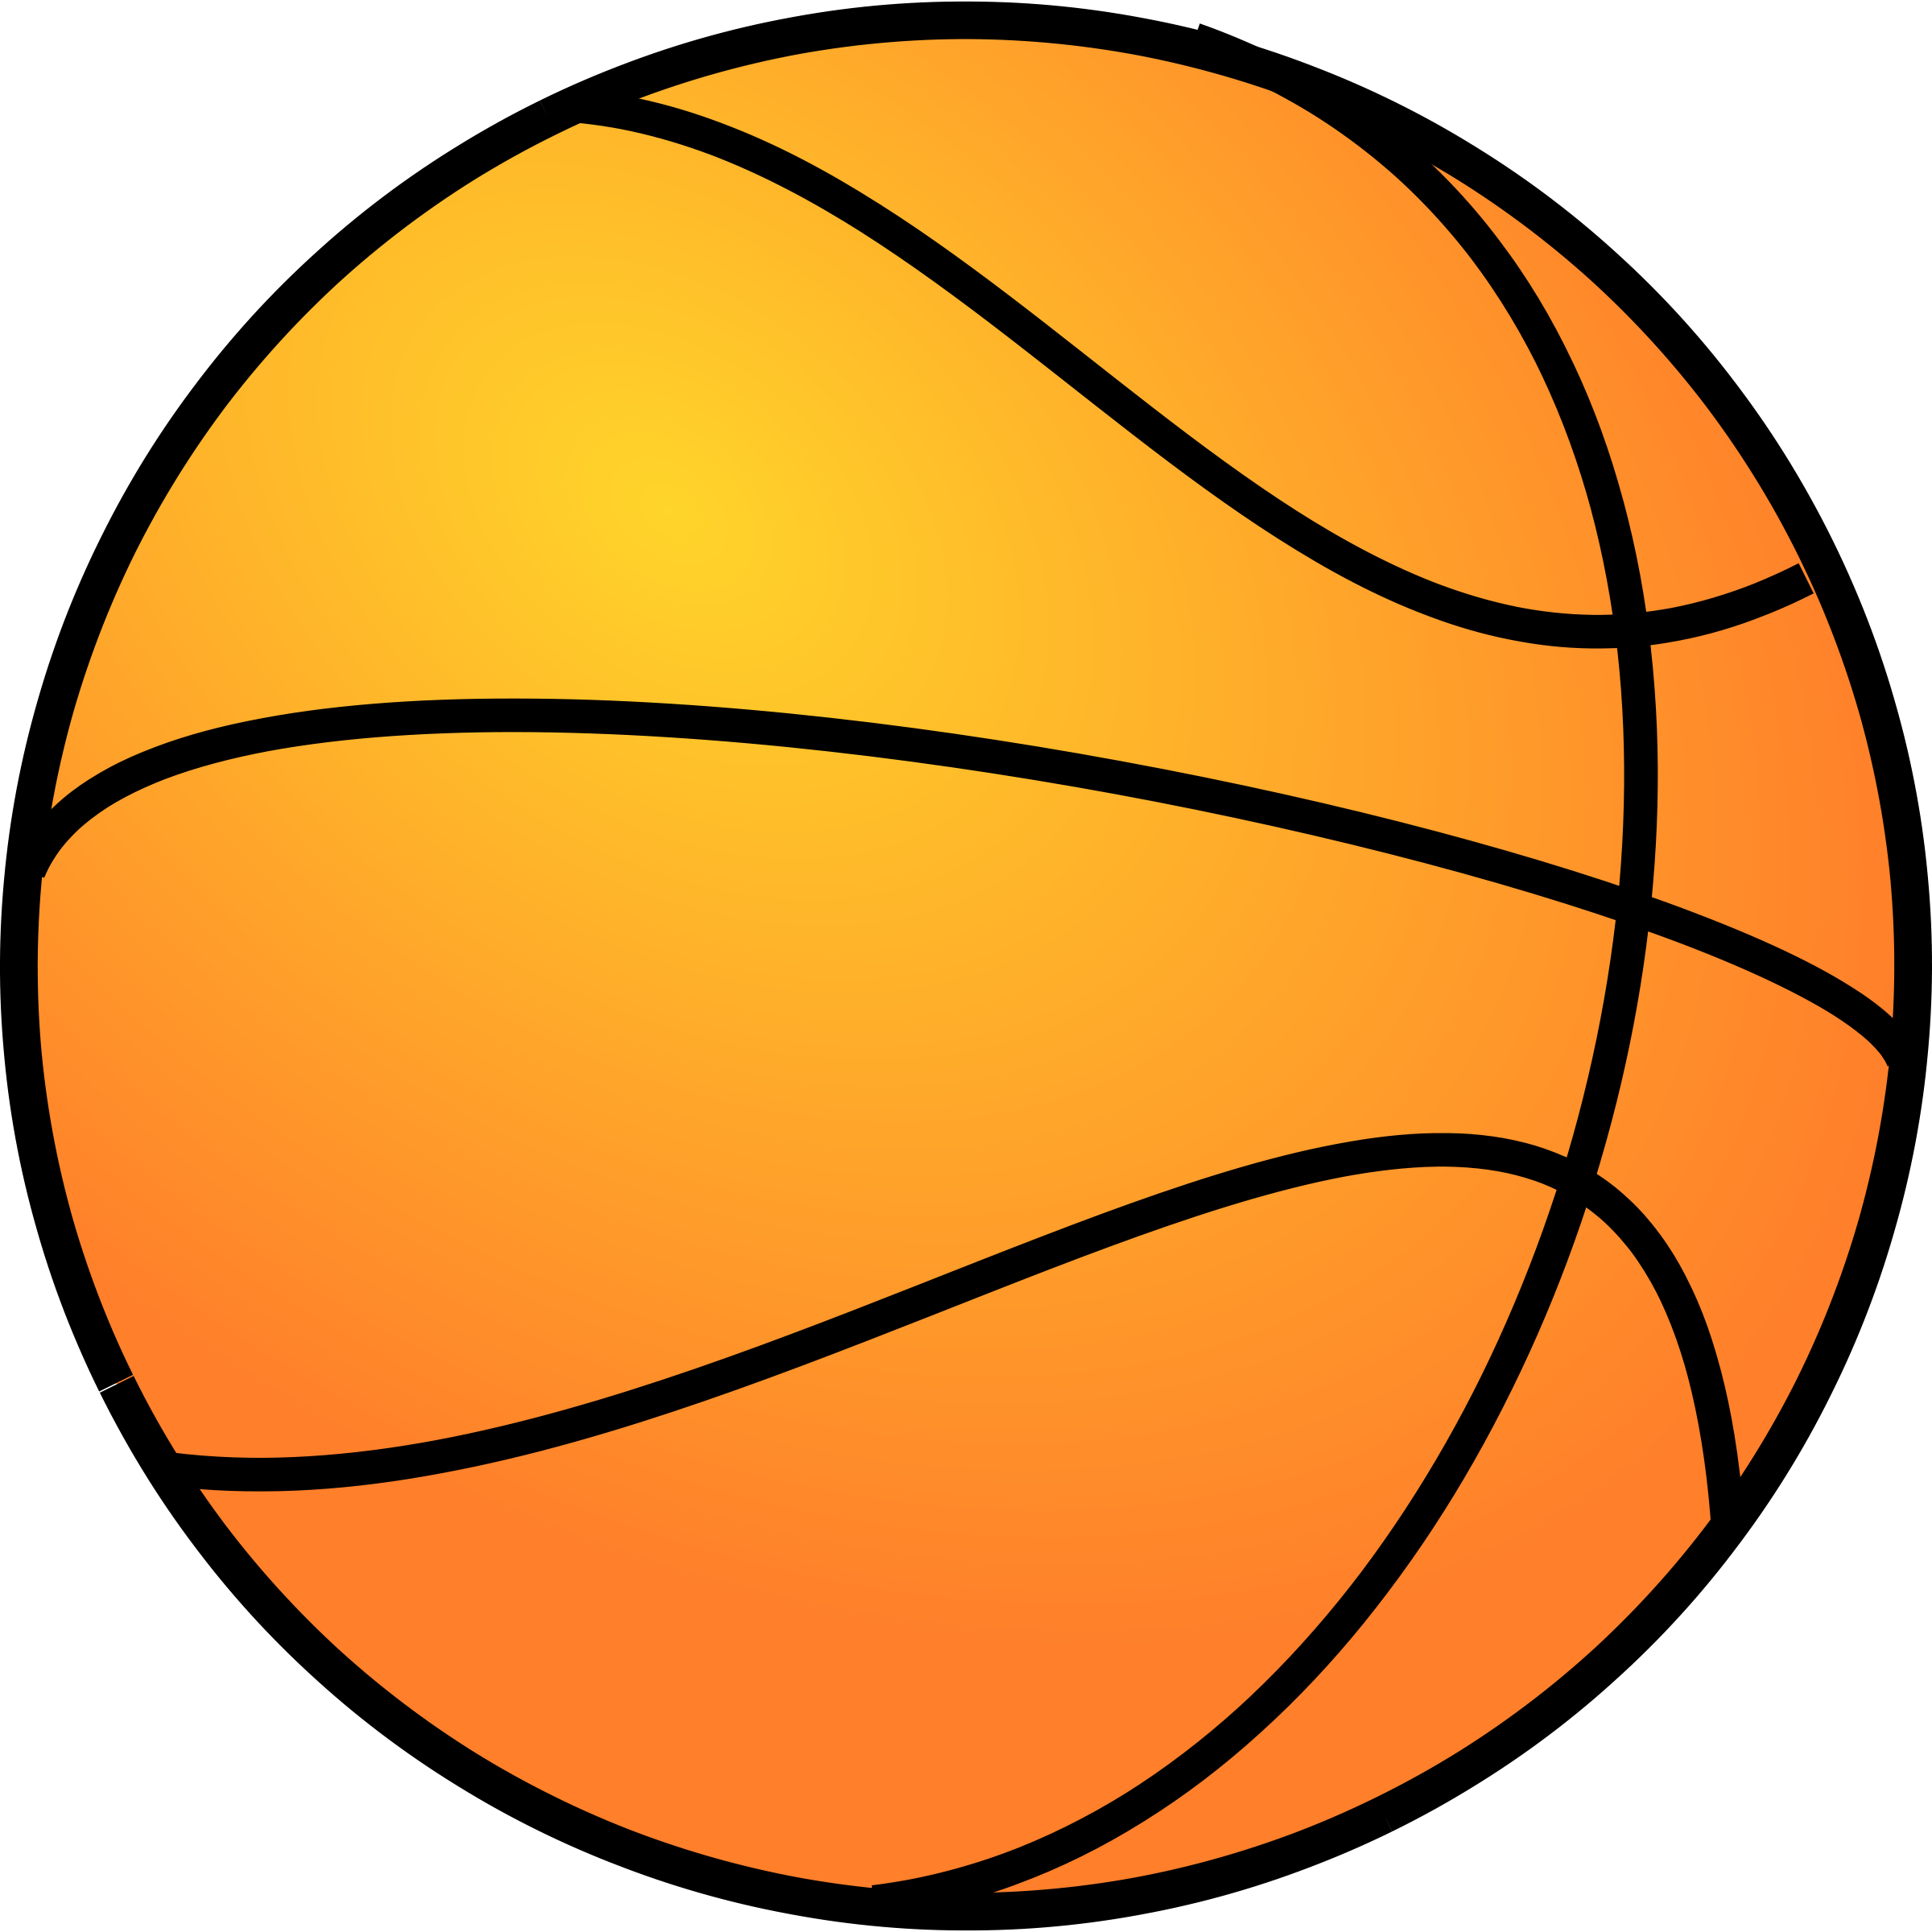 Basketball Clipart-Clipartlook.com-2400